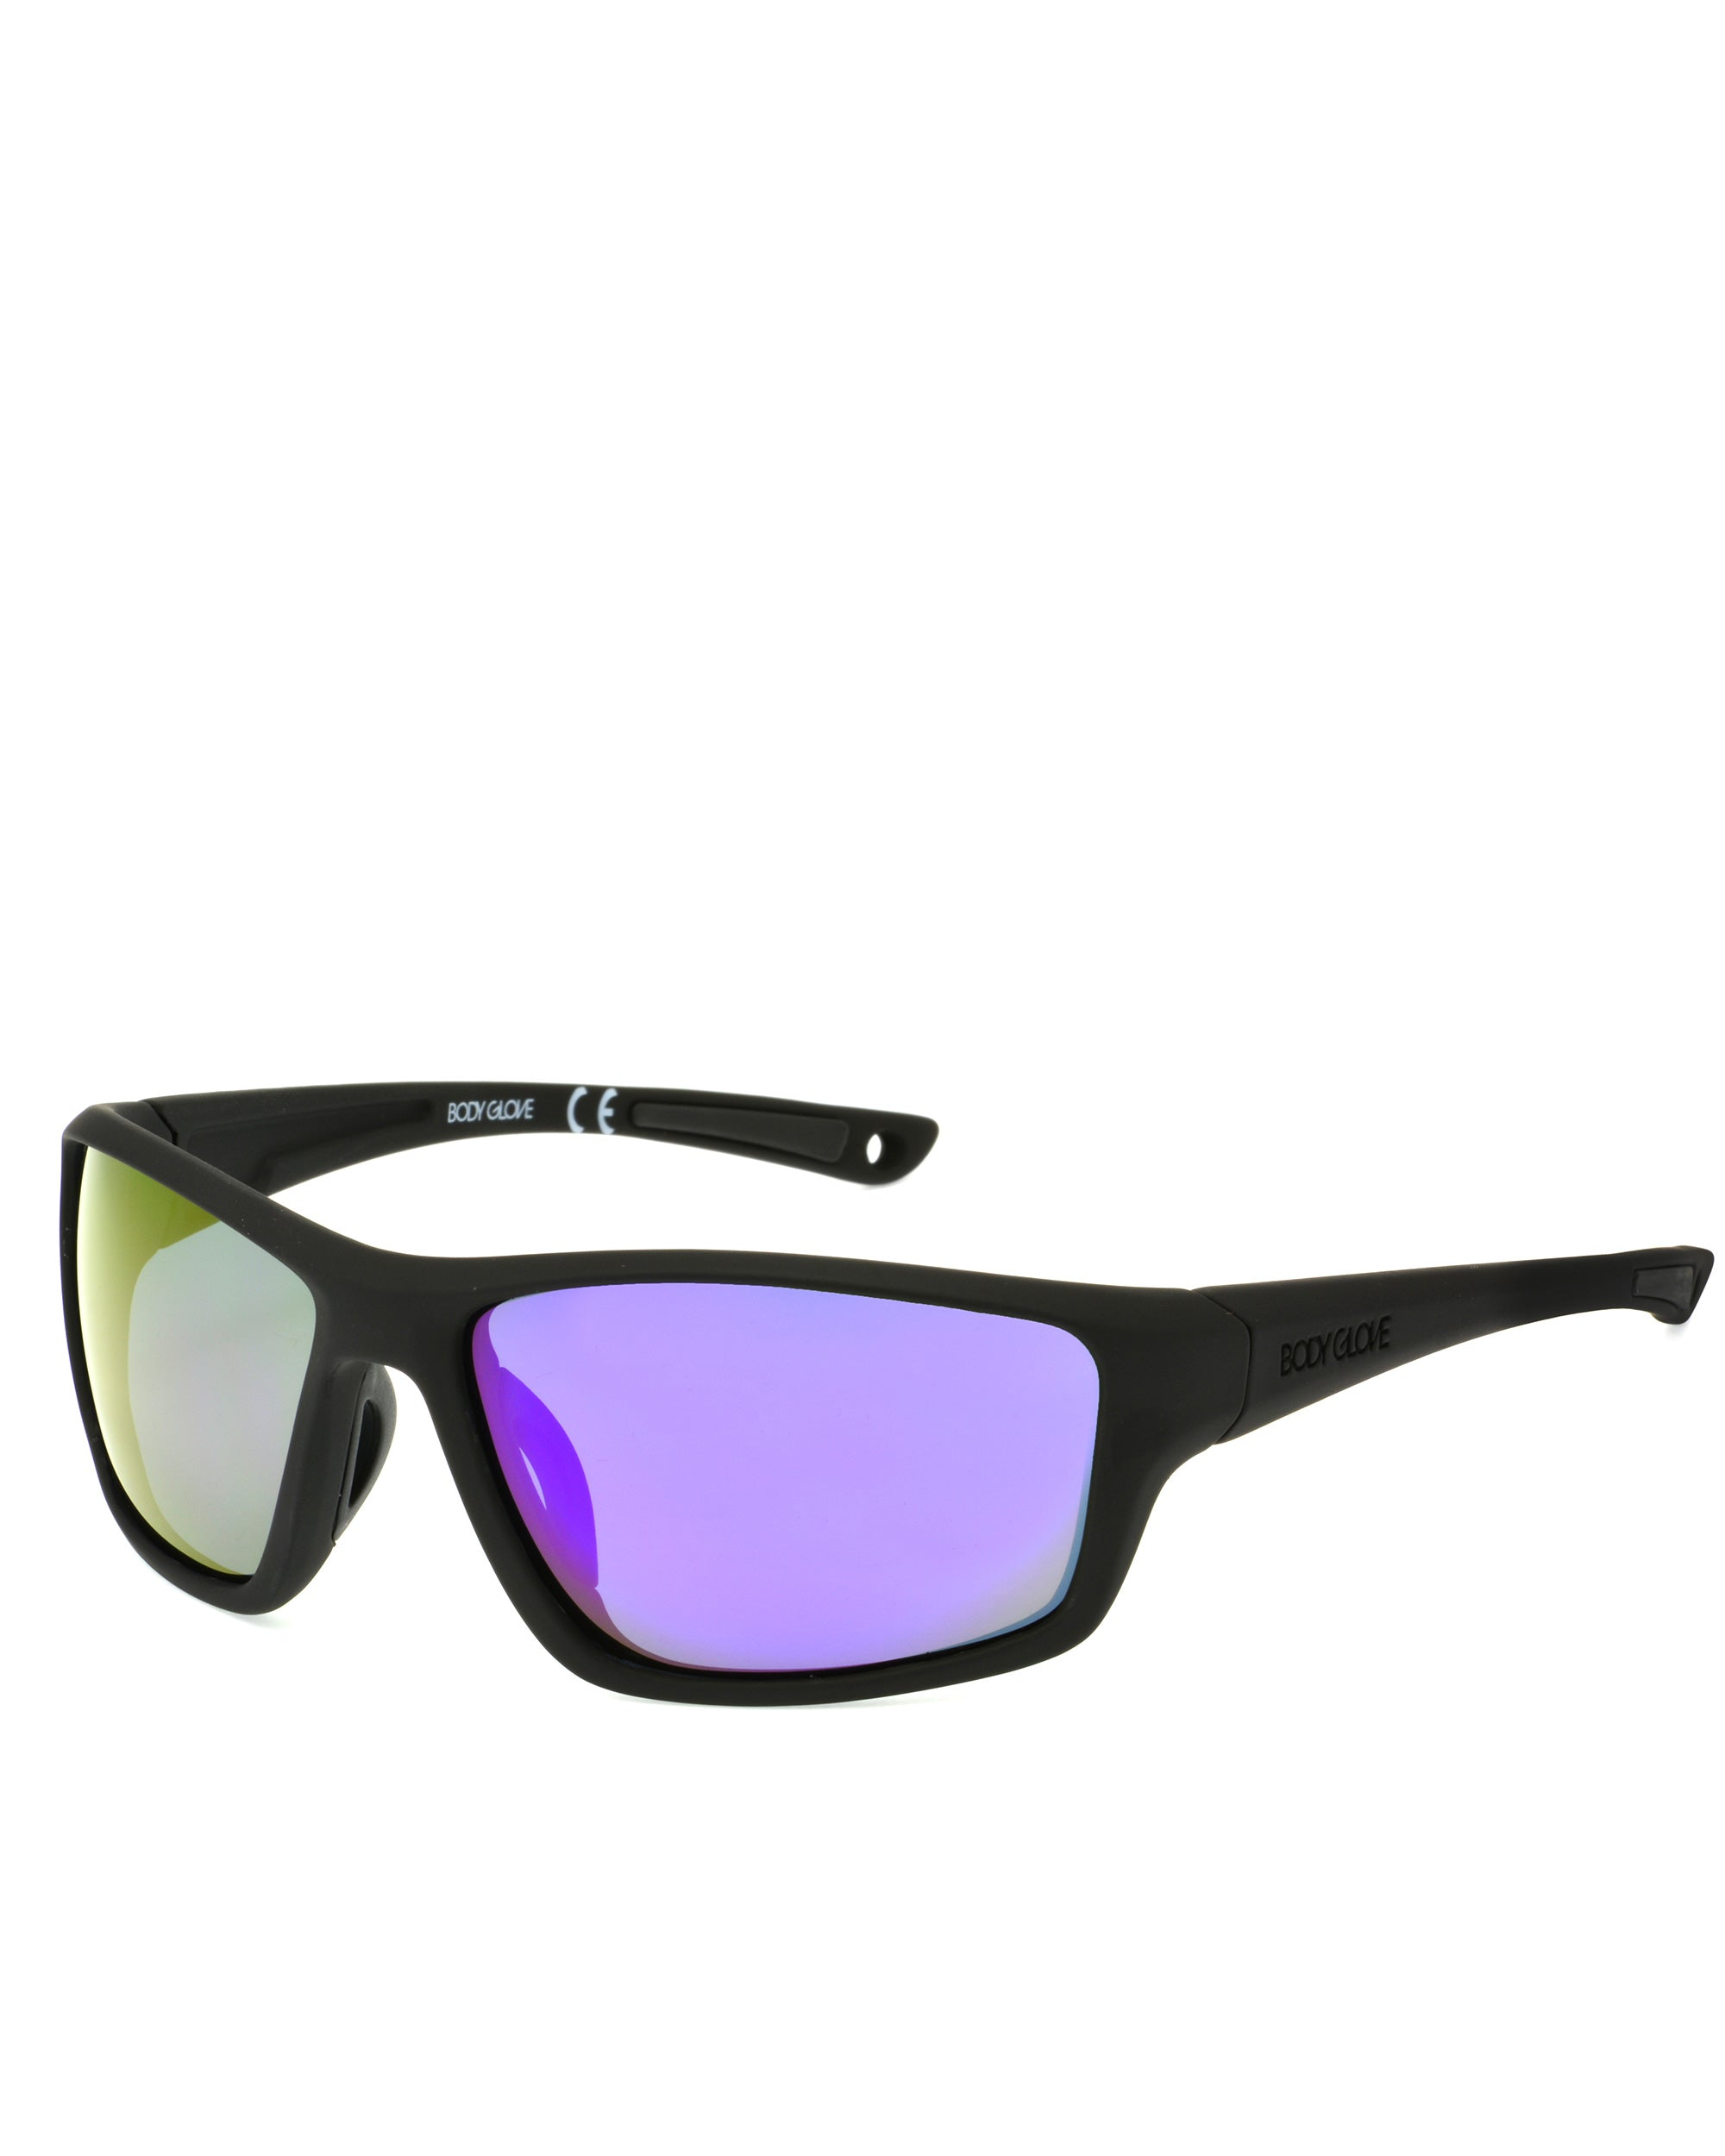 Men's FL21 Floating Polarized Sunglasses - Black